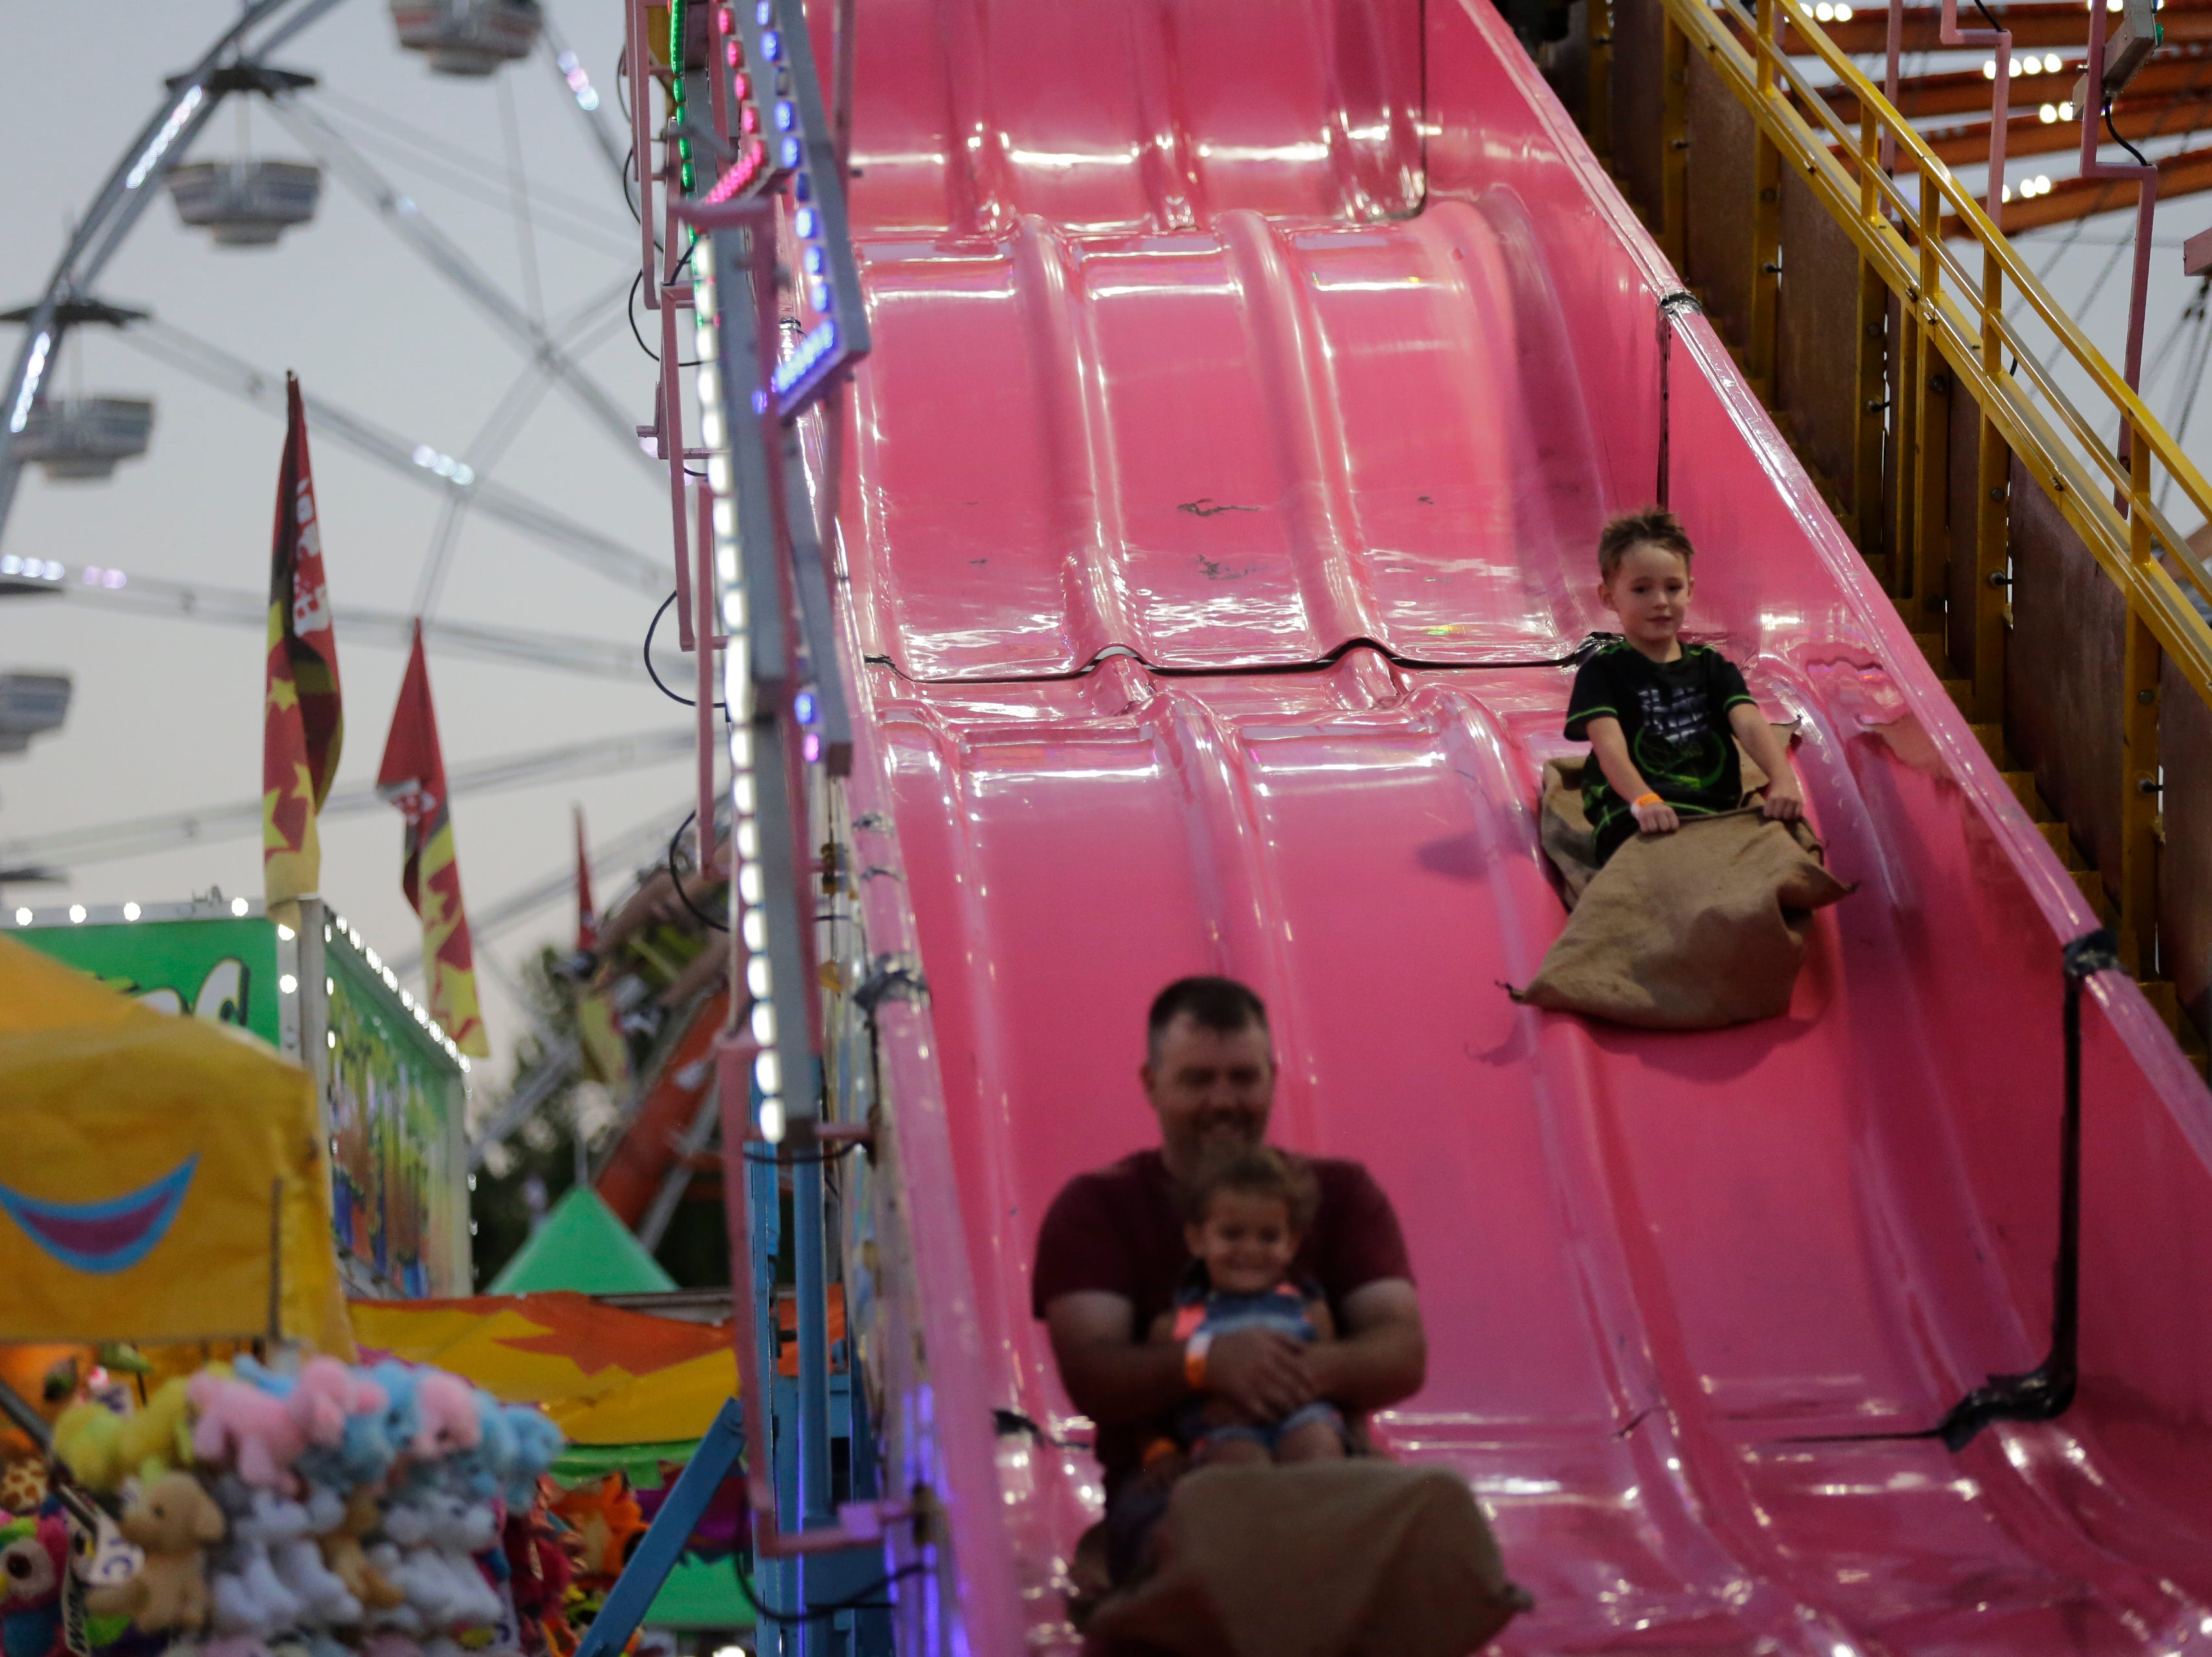 Kenneth, left, Raina, 3, and Ryder Collopy, 6, right, go down the big slide at the Central Wisconsin State Fair in Marshfield Wednesday, August 22, 2018.